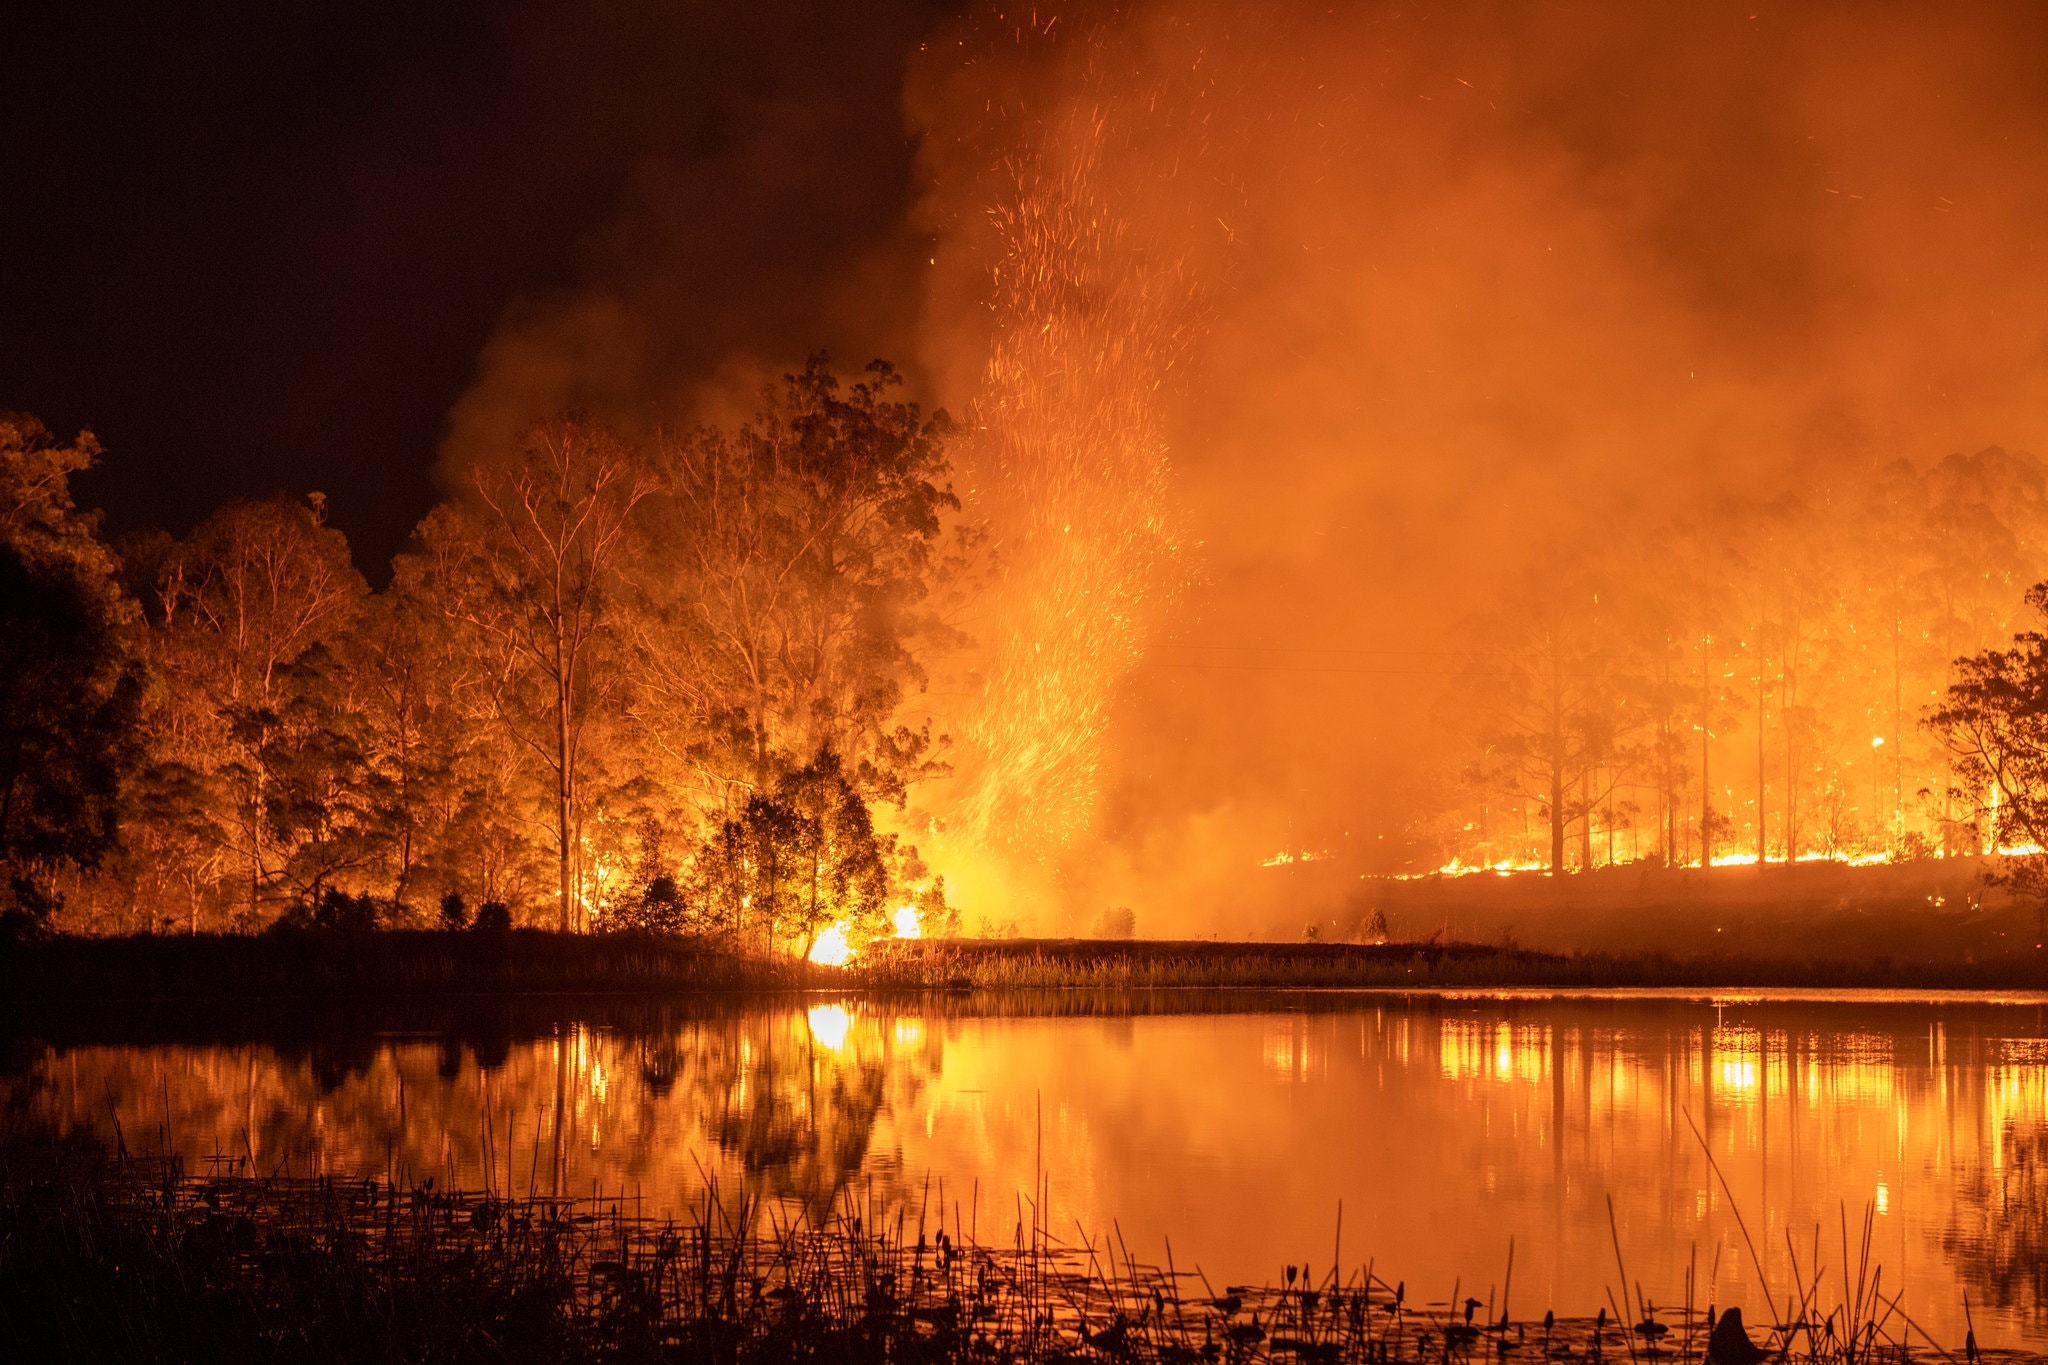 trees and water illuminated by wildfire in New South Wales